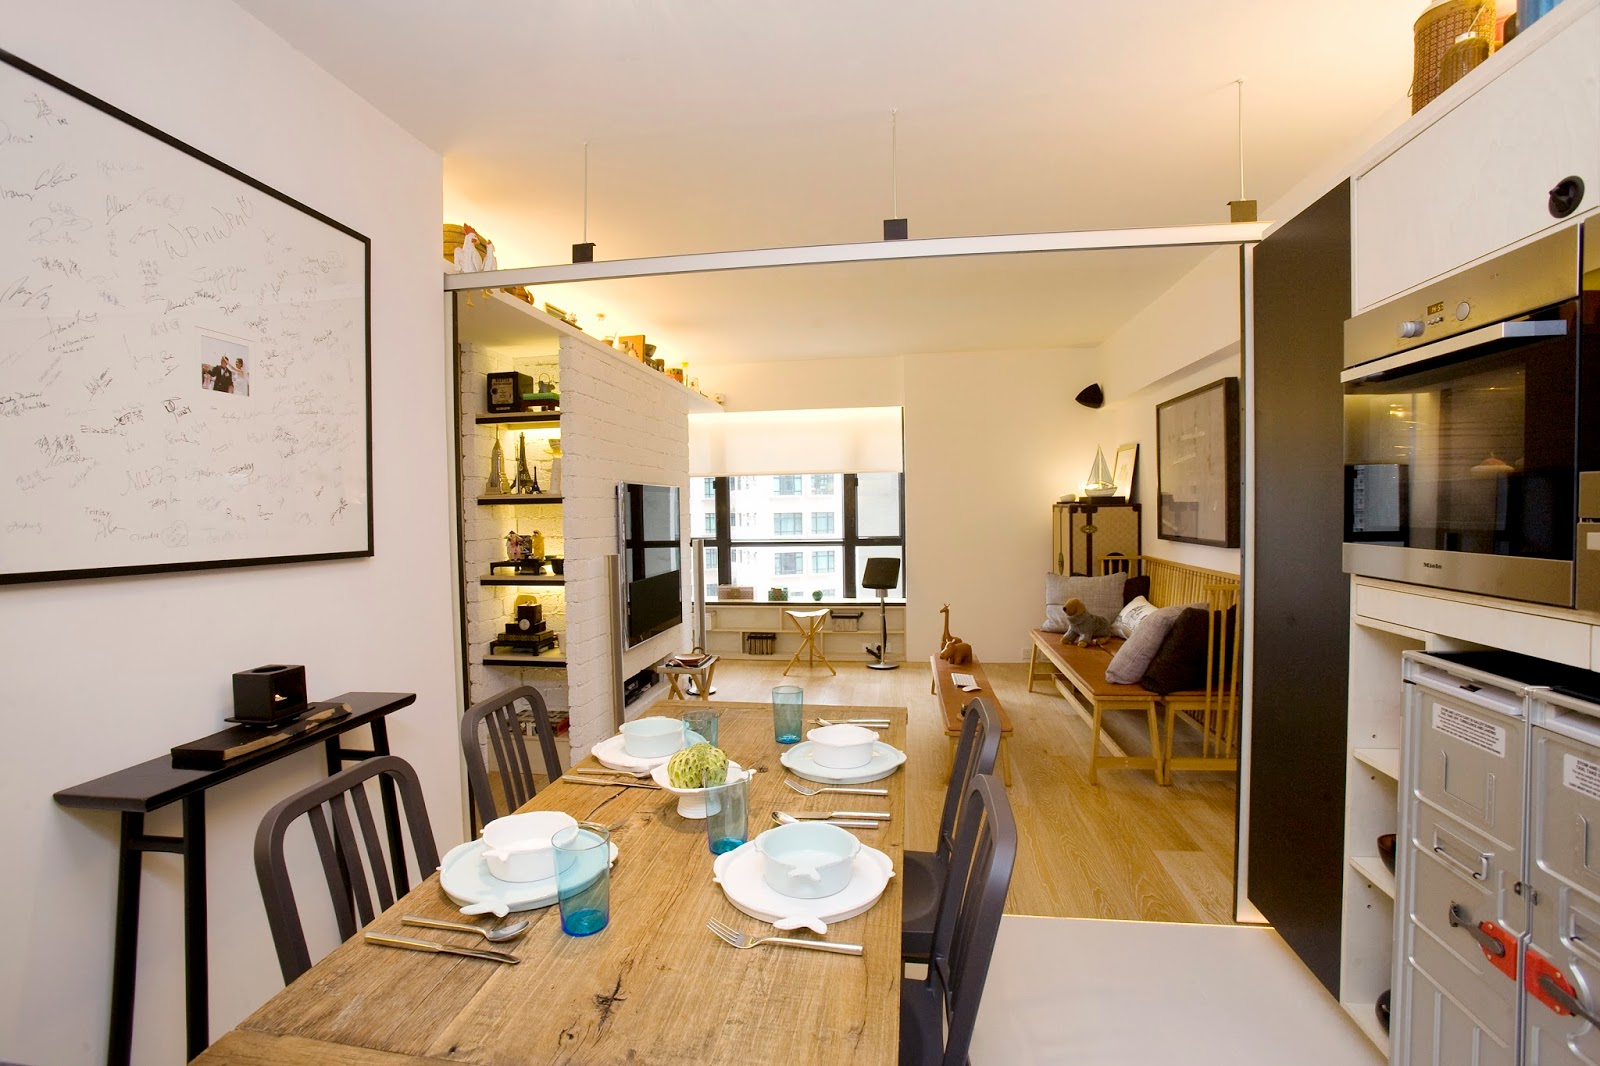 Hong Kong Interior Design Tips & Ideas